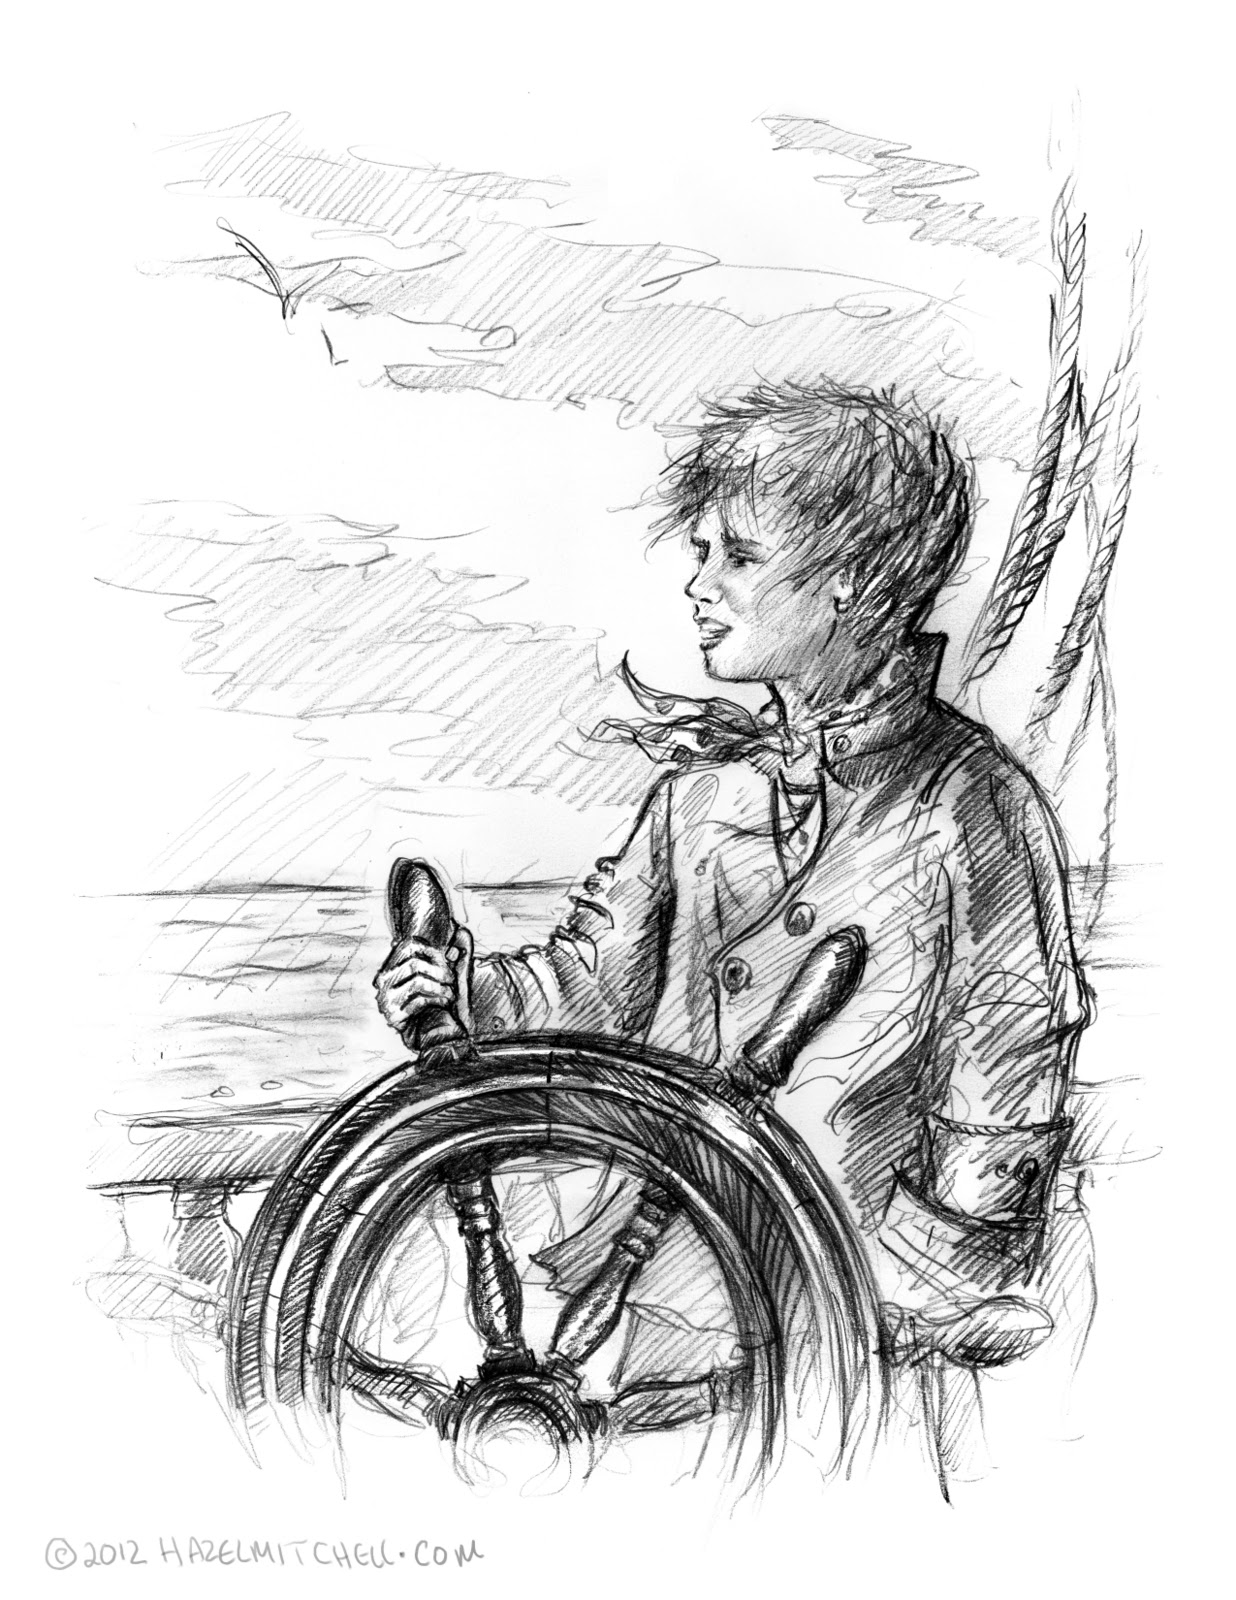 hazel mitchell the young pirate u2013 sketch for today nescbwi